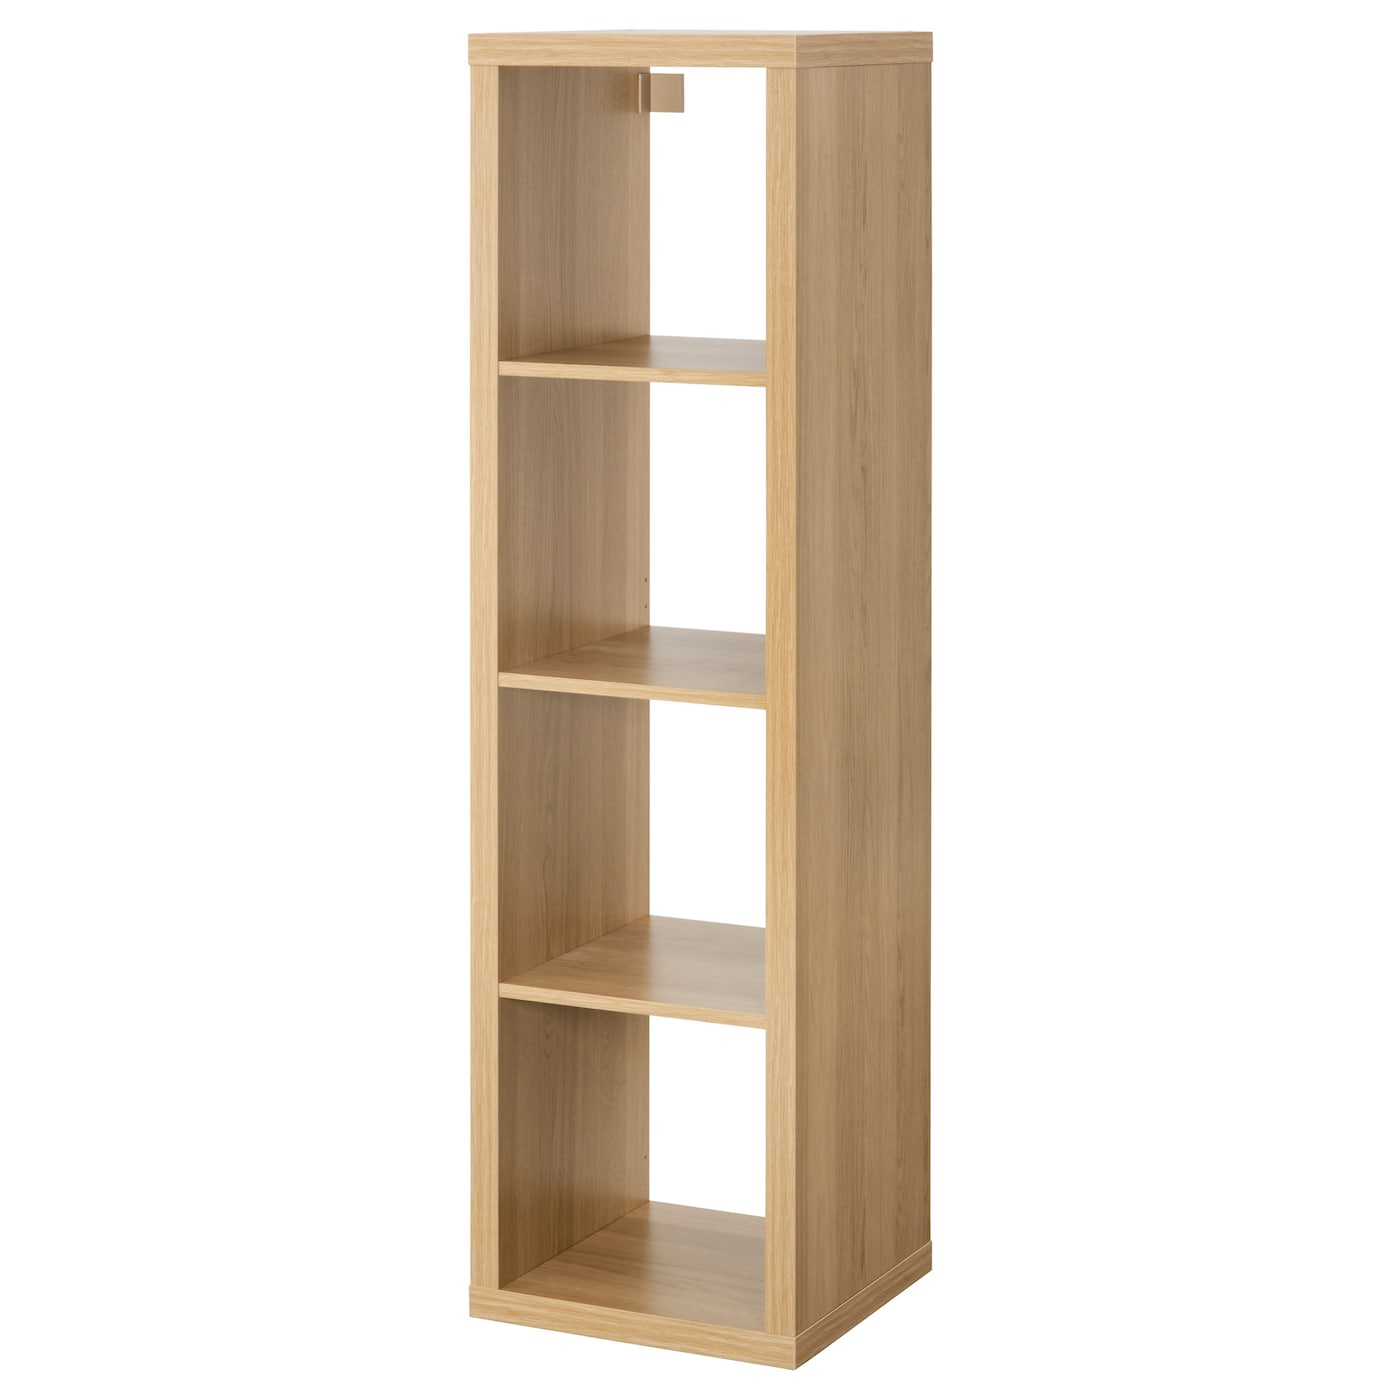 Storage Furniture & Accessories